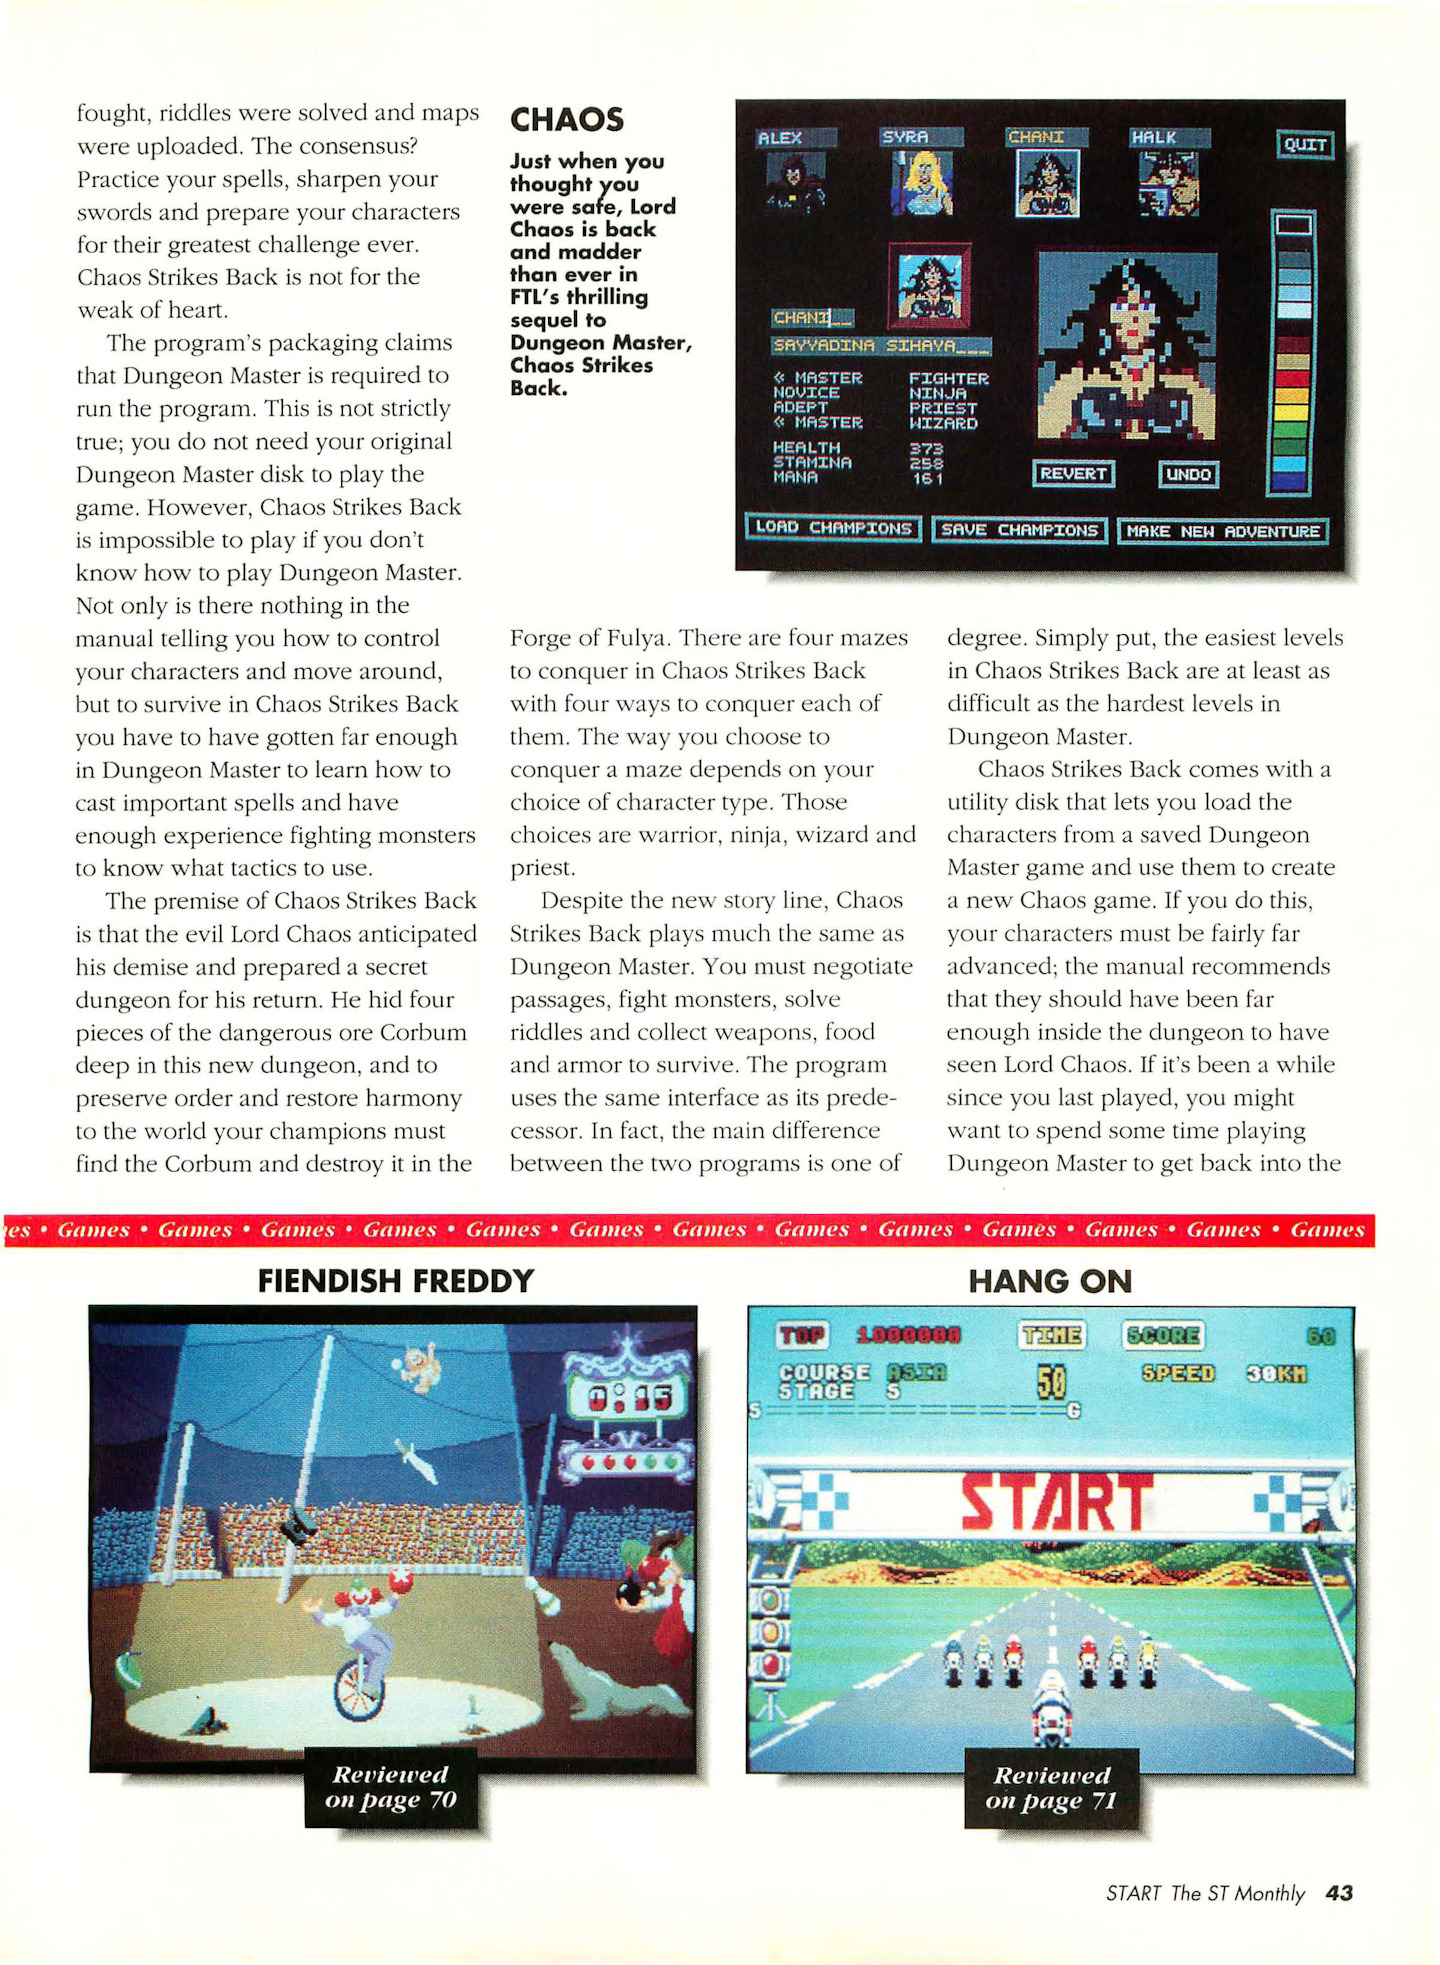 Chaos Strikes Back for Atari ST Review published in American magazine 'Start', Vol 4 No 11 June 1990, Page 43